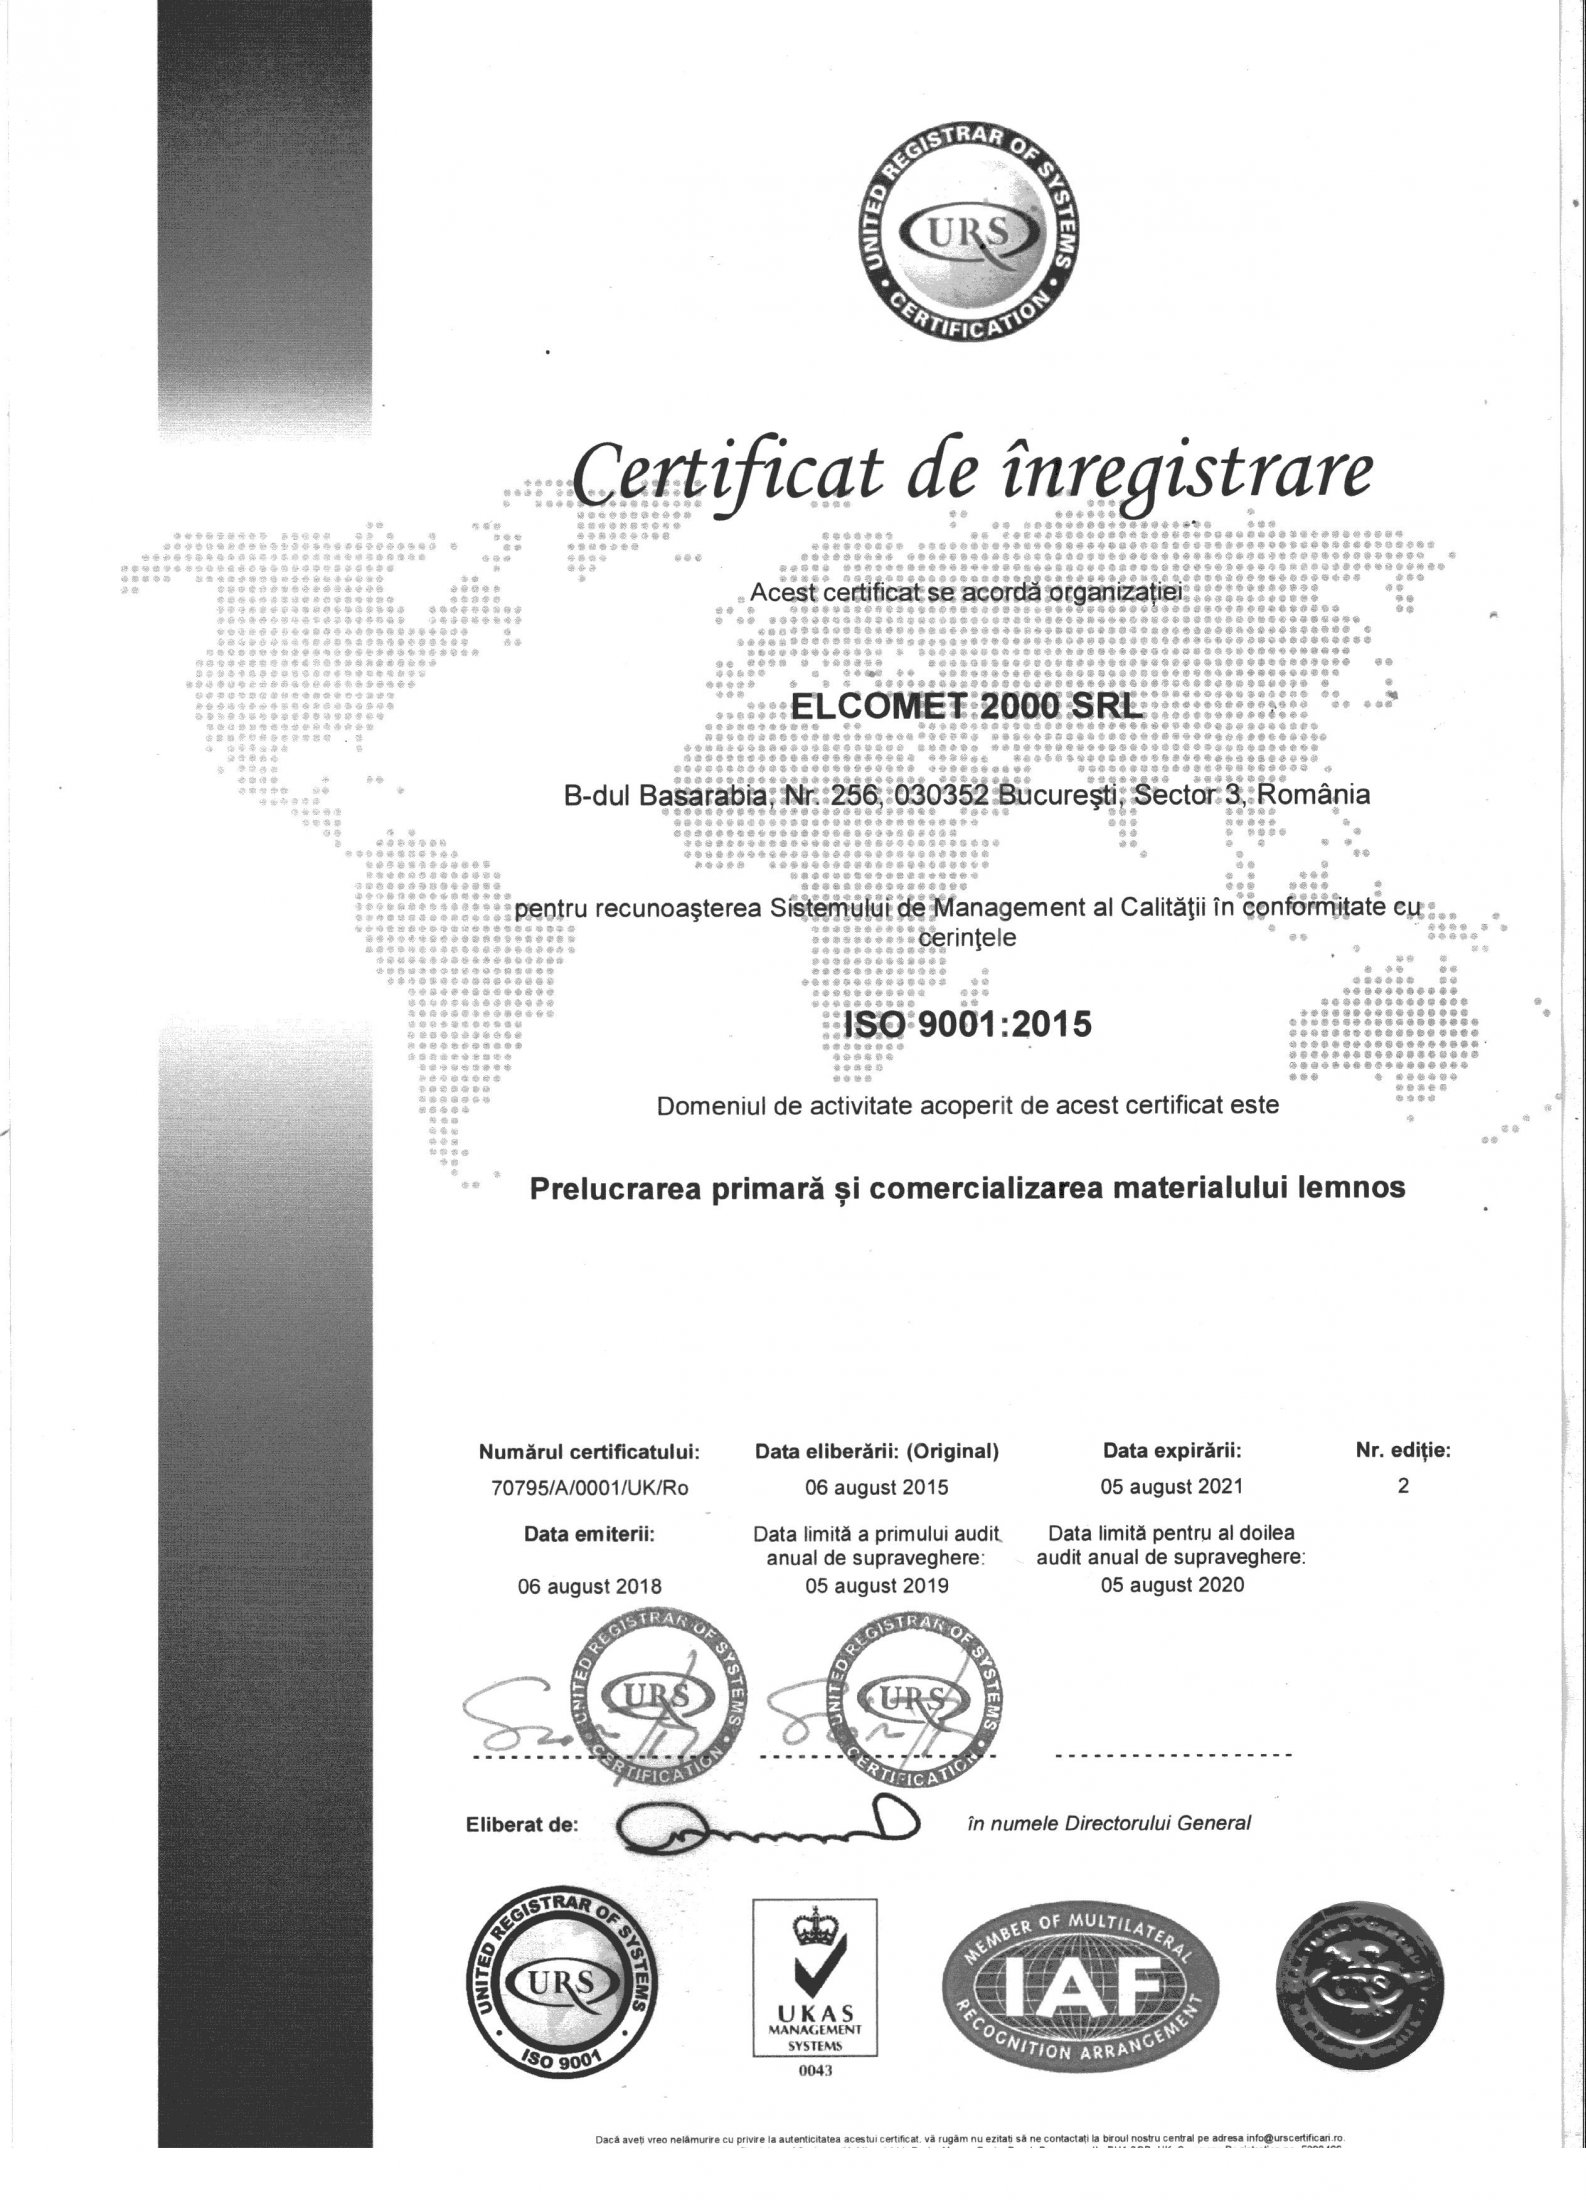 Iso 9001.2015